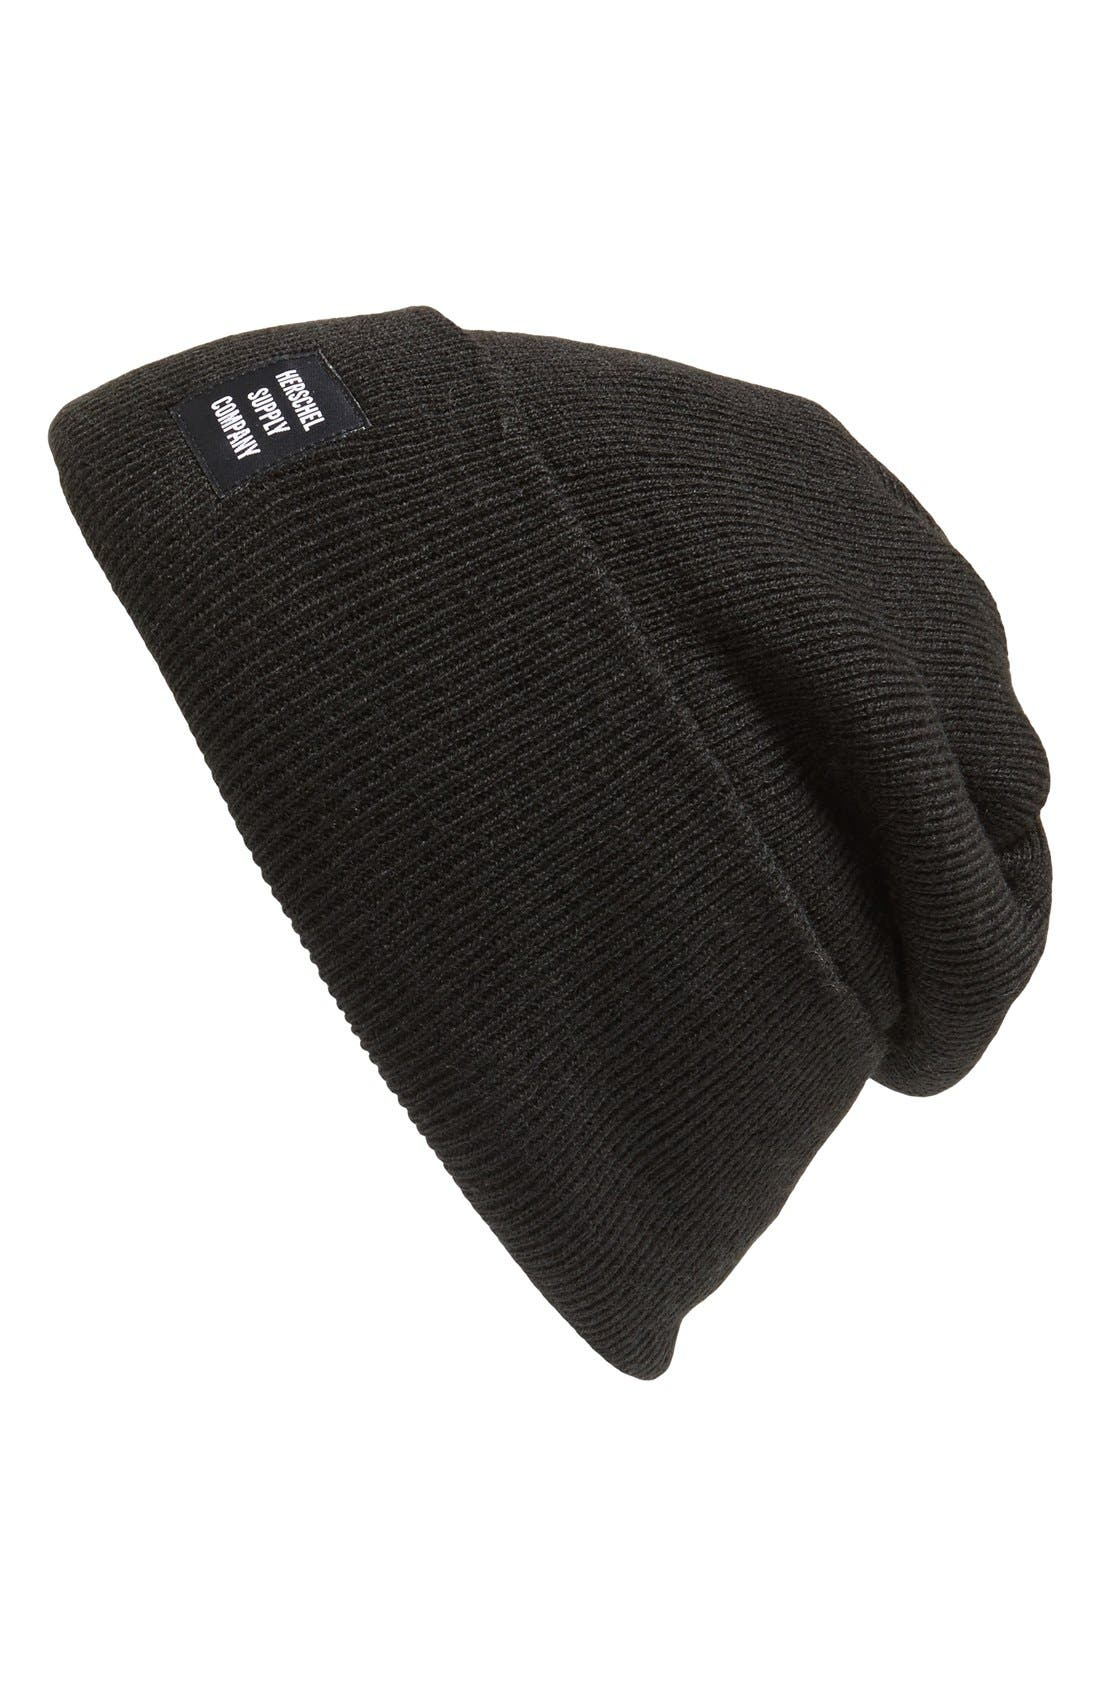 'Abbott' Knit Cap,                         Main,                         color, 001